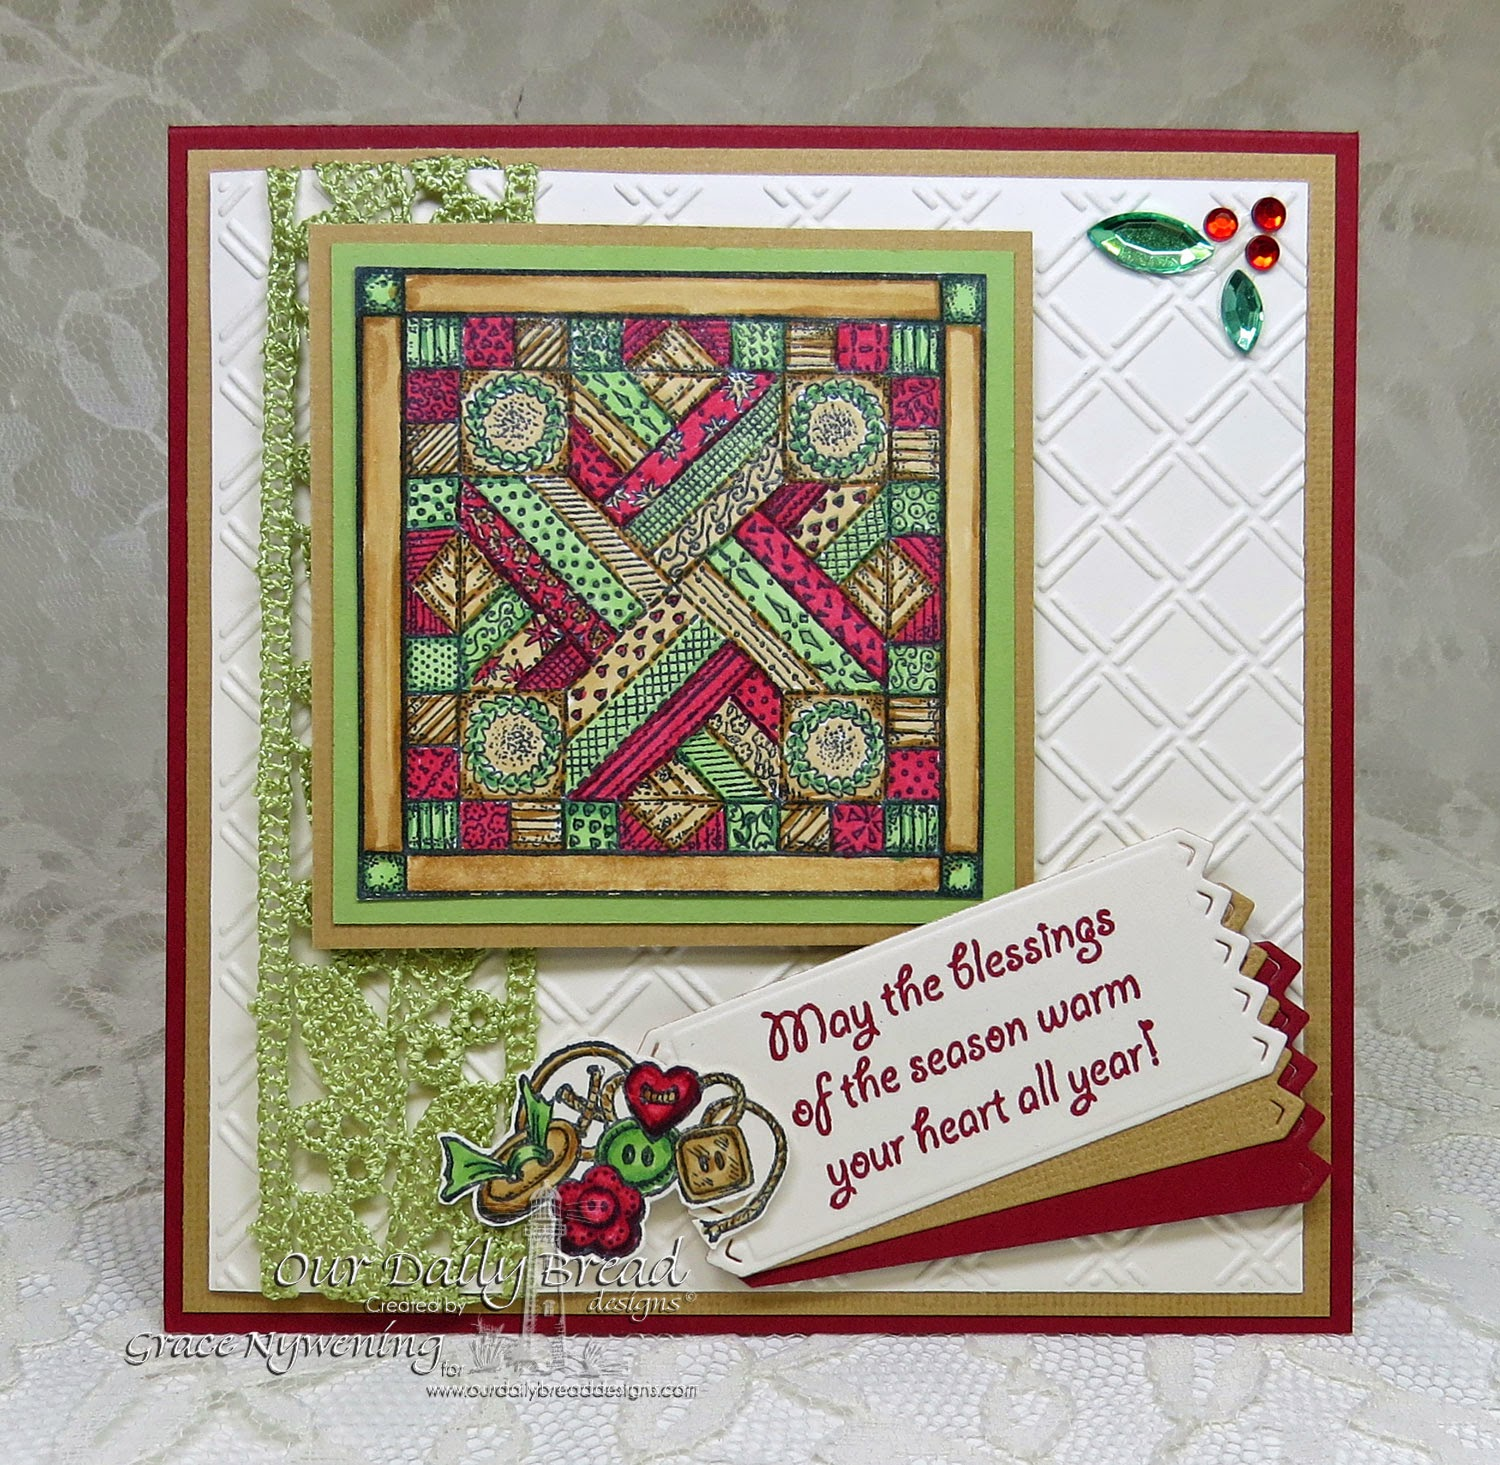 ODBD Stamps, Quilts, Warm Wishes, designed by Grace Nywening